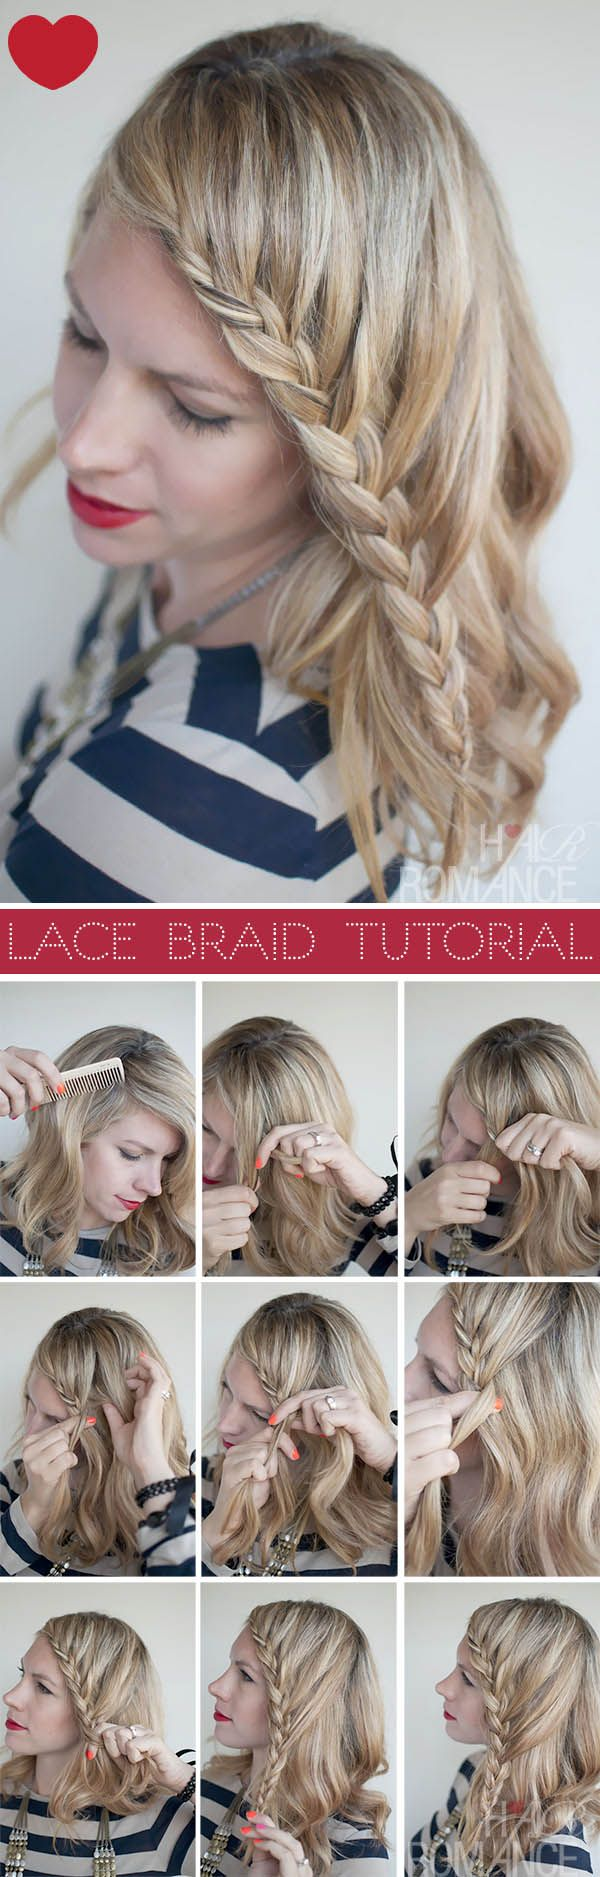 Hair Romance - Lace Braid Hairstyle Tutorial